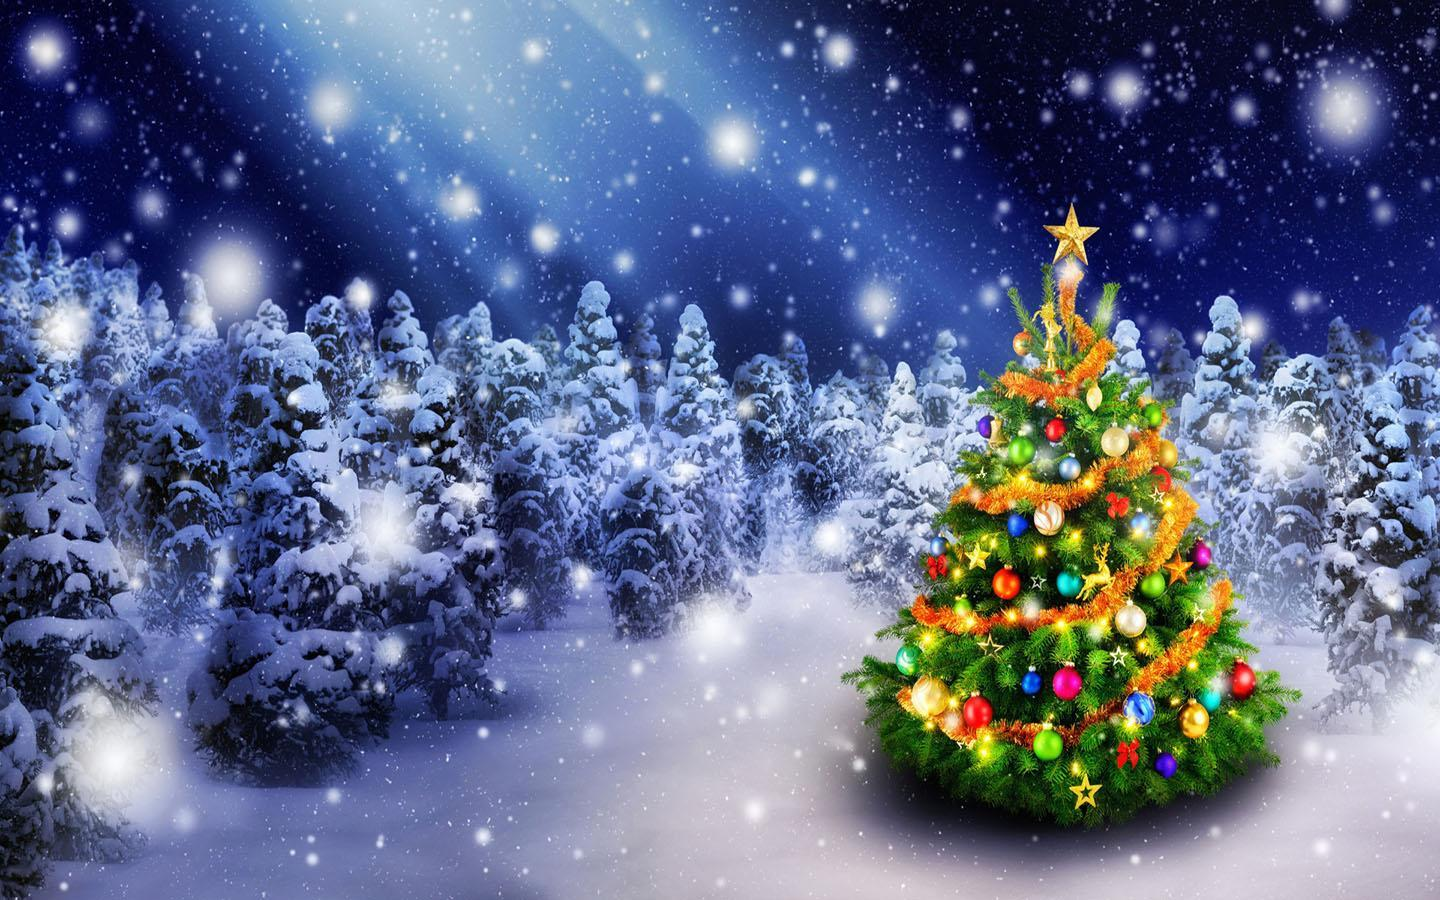 3D Christmas Wallpaper Free for Android ...